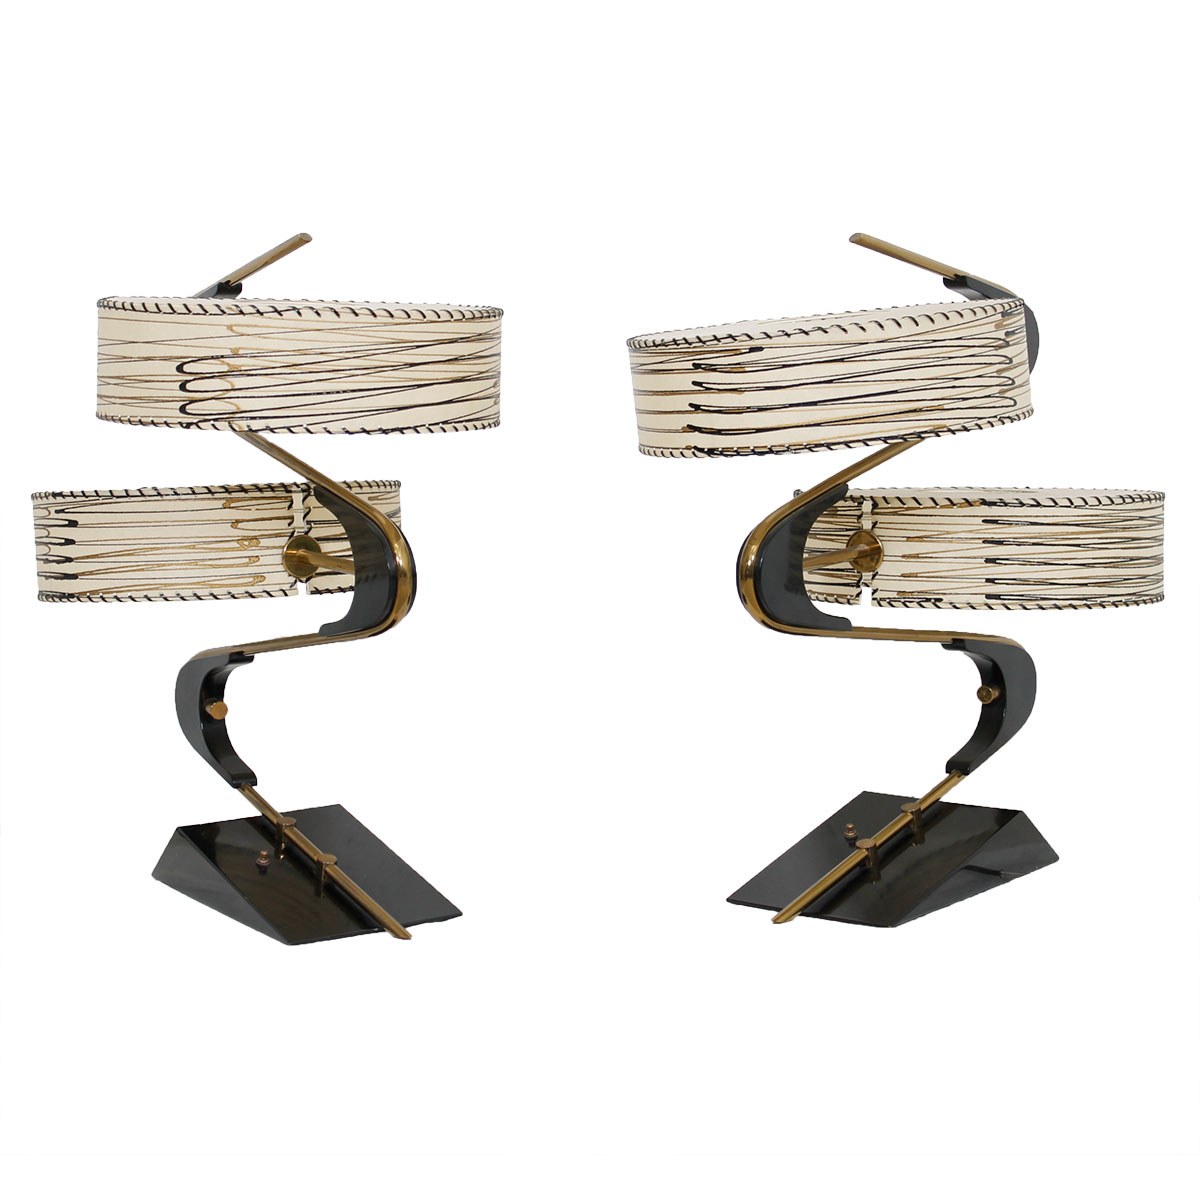 Rare Duo of 50's Sculptural Abstract Table Lamps w/ Double Fiberglass Shades